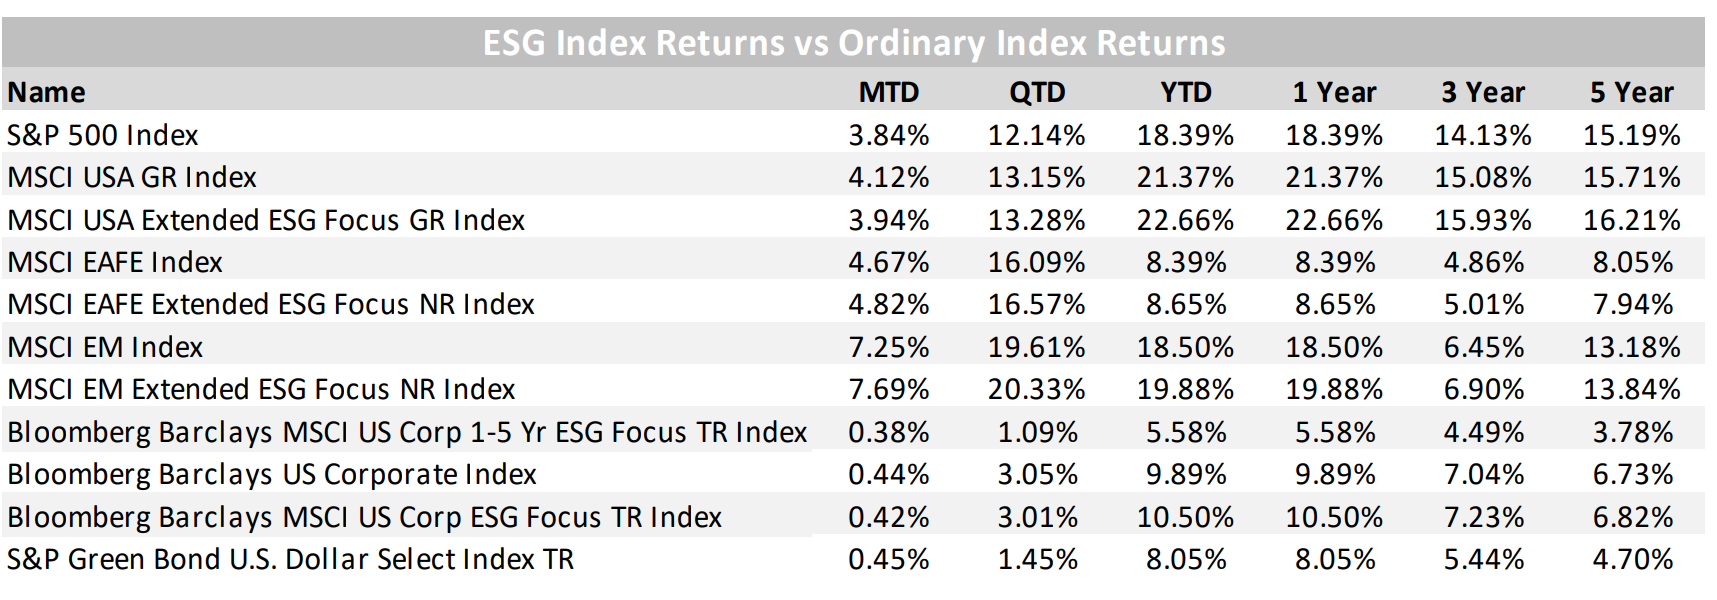 ESG Index vs Ordinary Index